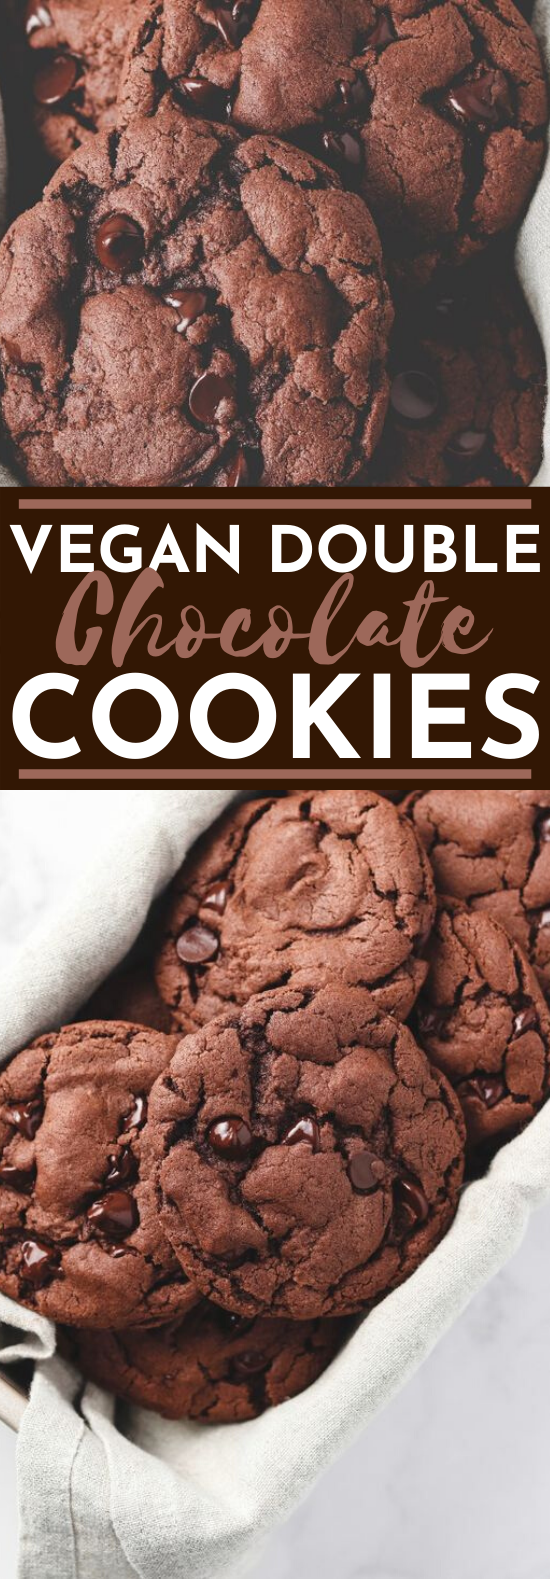 Vegan Double Chocolate Cookies #cookies #chocolate #desserts #baking #recipes